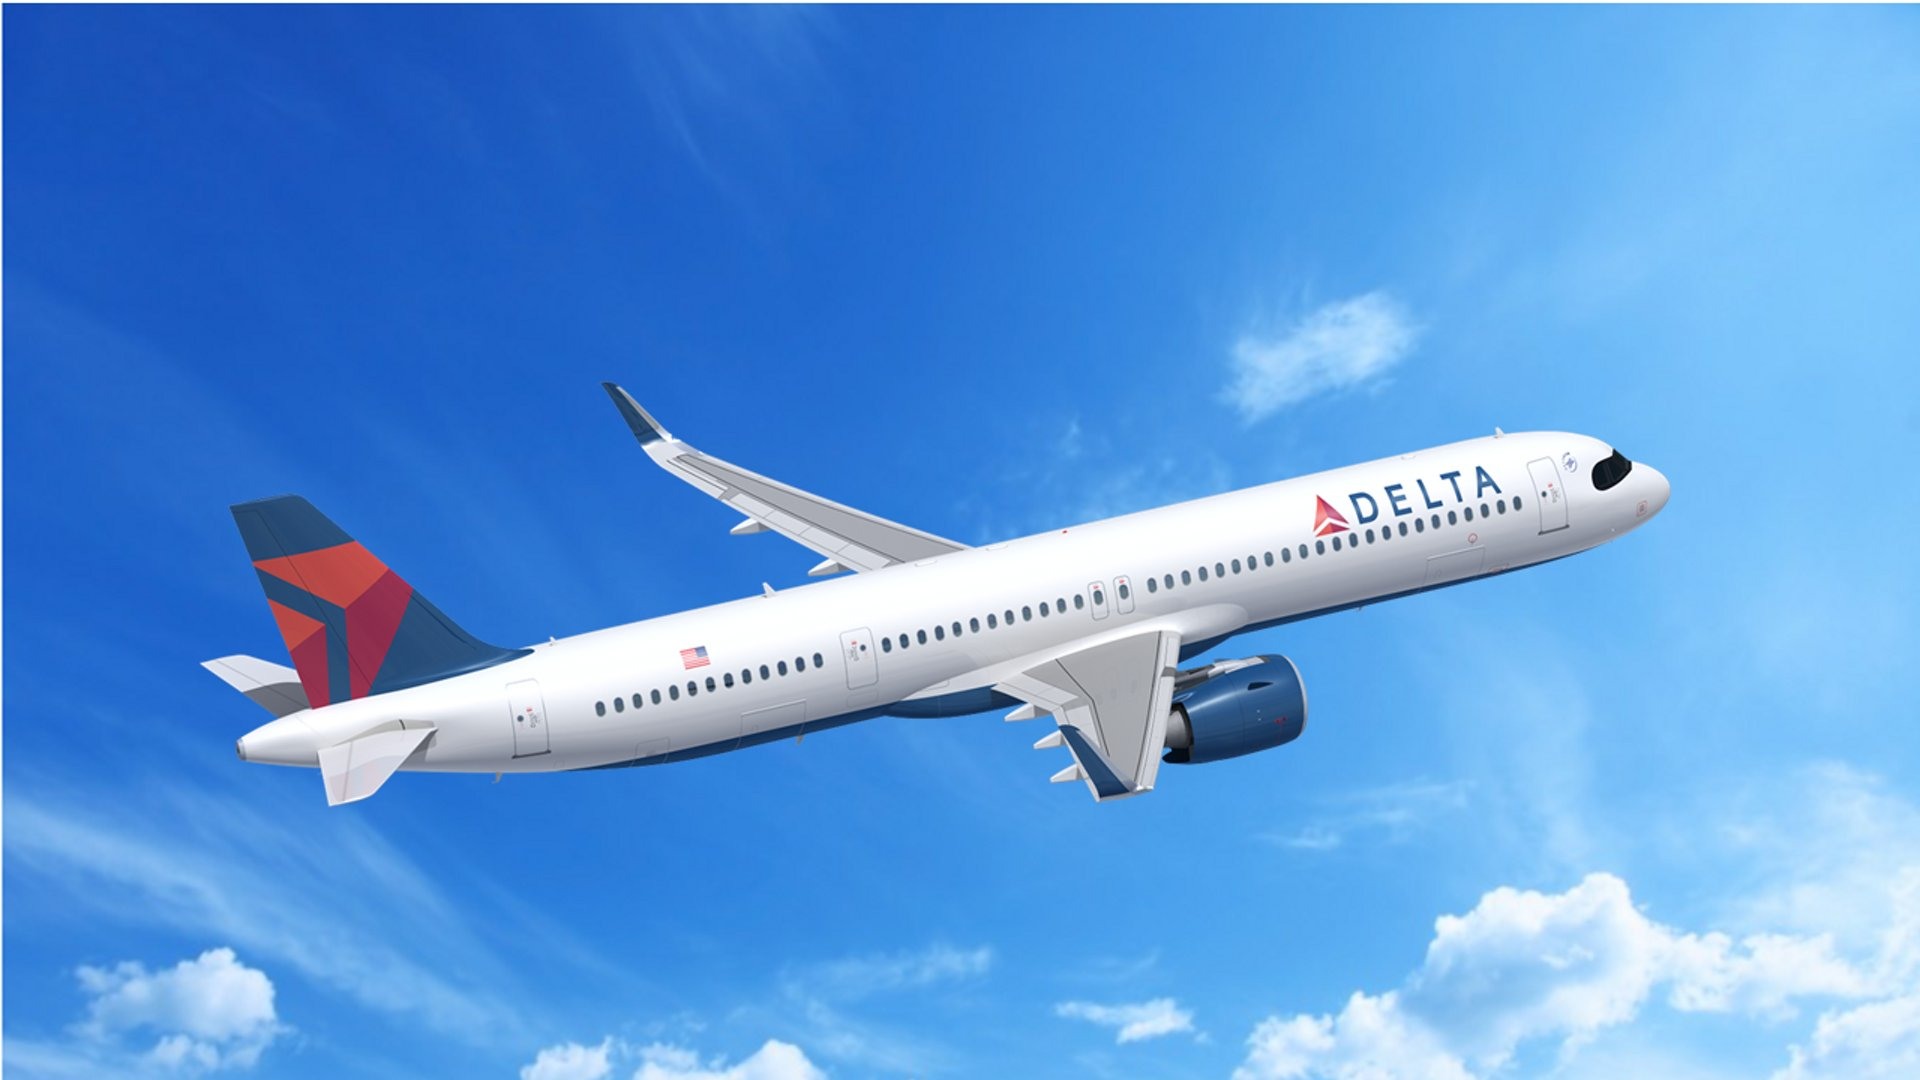 Delta Air Lines has ordered 30 additional Airbus A321neo aircraft to help meet the airline's future fleet requirements. The newly-ordered aircraft are in addition to the airline's existing orders for 125 of the type, bringing the outstanding orders from Delta to a total of 155 A321neos.